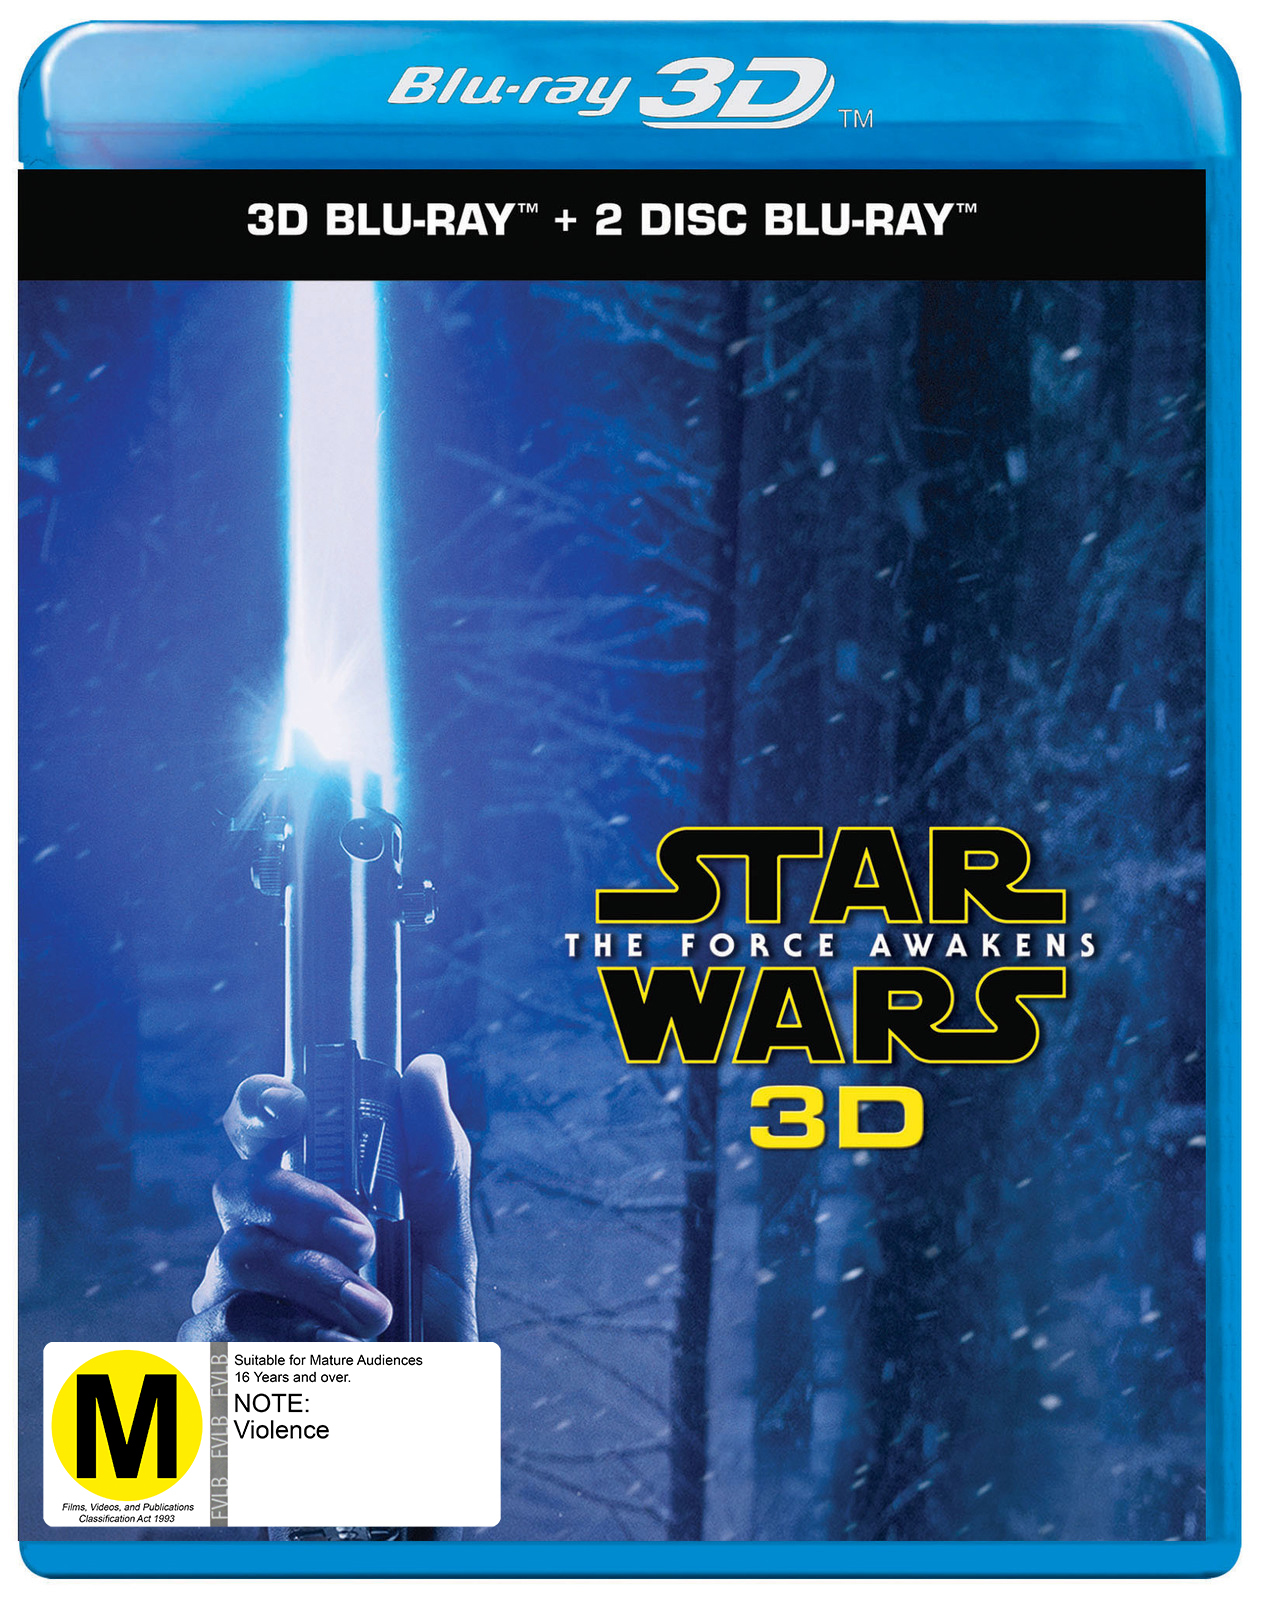 Star Wars: Episode VII - The Force Awakens on Blu-ray, 3D Blu-ray image